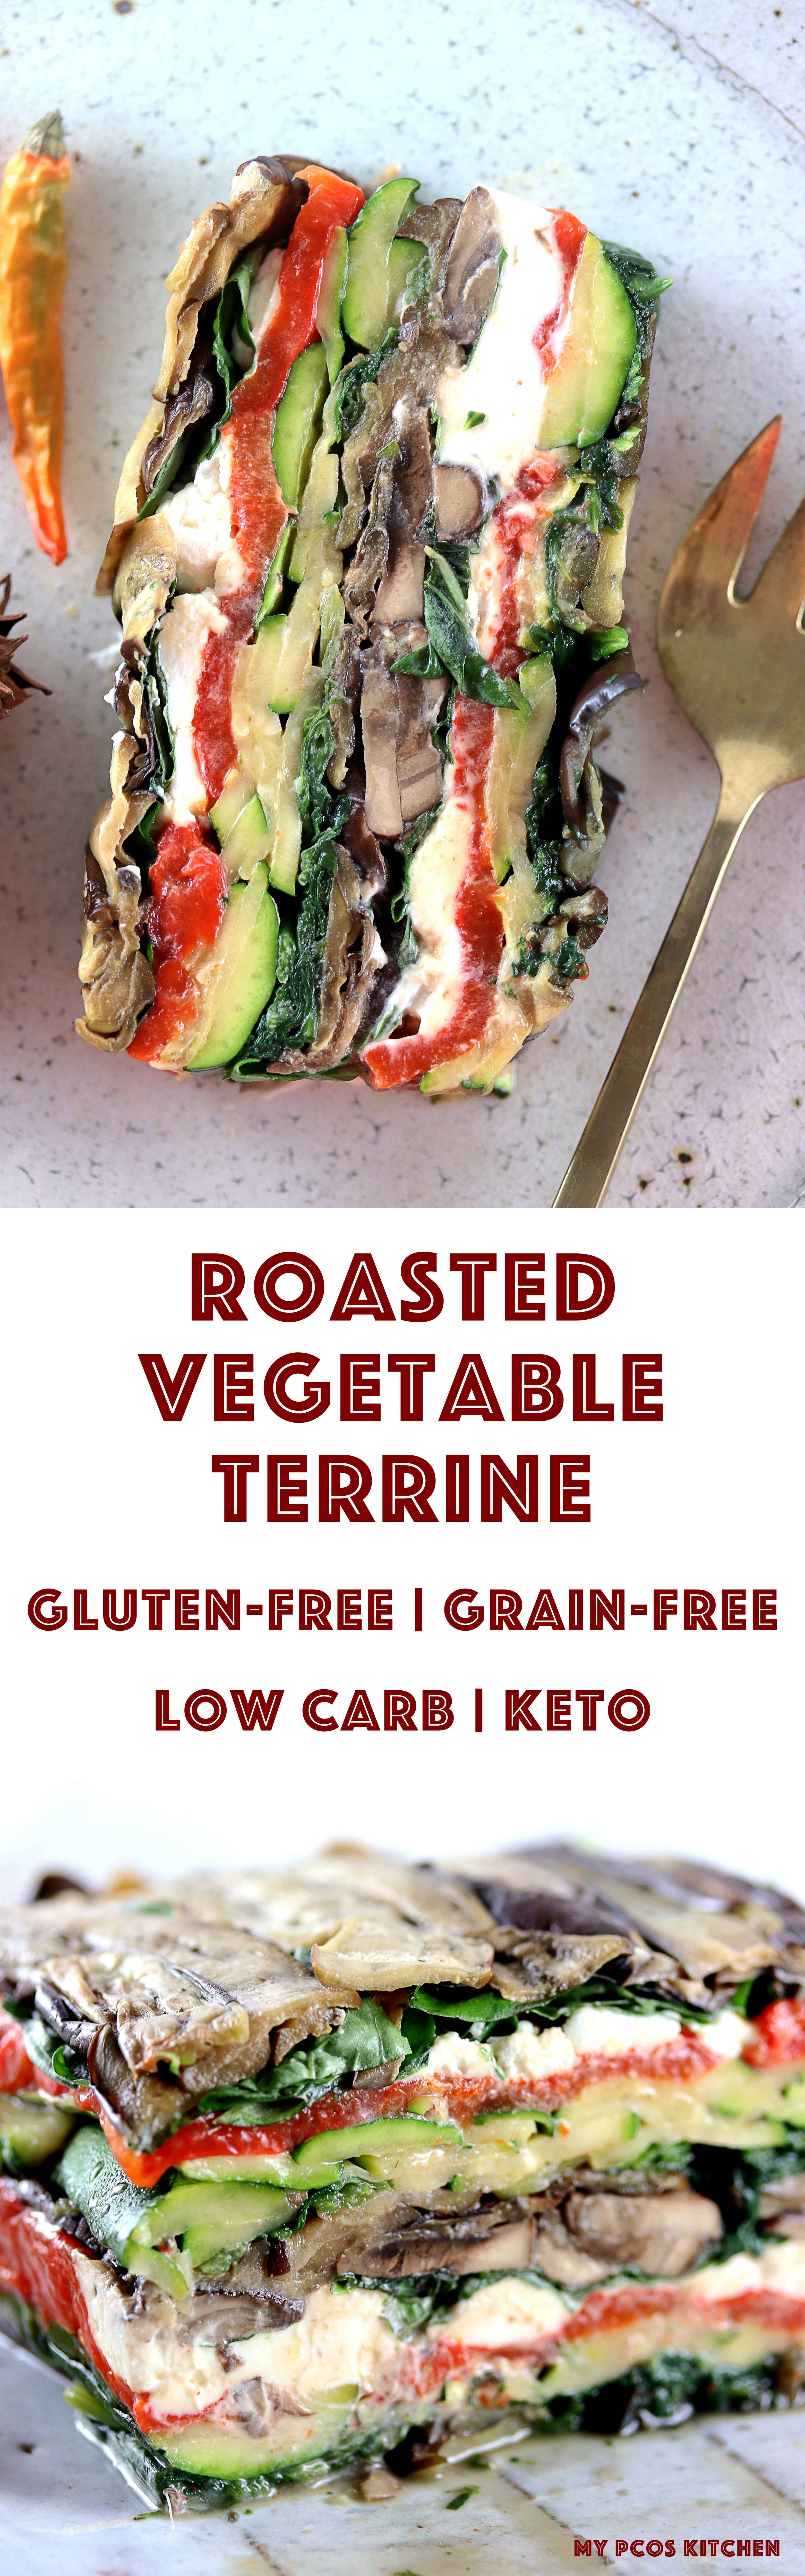 My PCOS Kitchen - Roasted Vegetable Terrine - Grilled vegetables stacked on top of one another with creamy goat cheese! Primal, keto, low carb and gluten-free! #keto #primal #lowcarb #terrine #vegetables